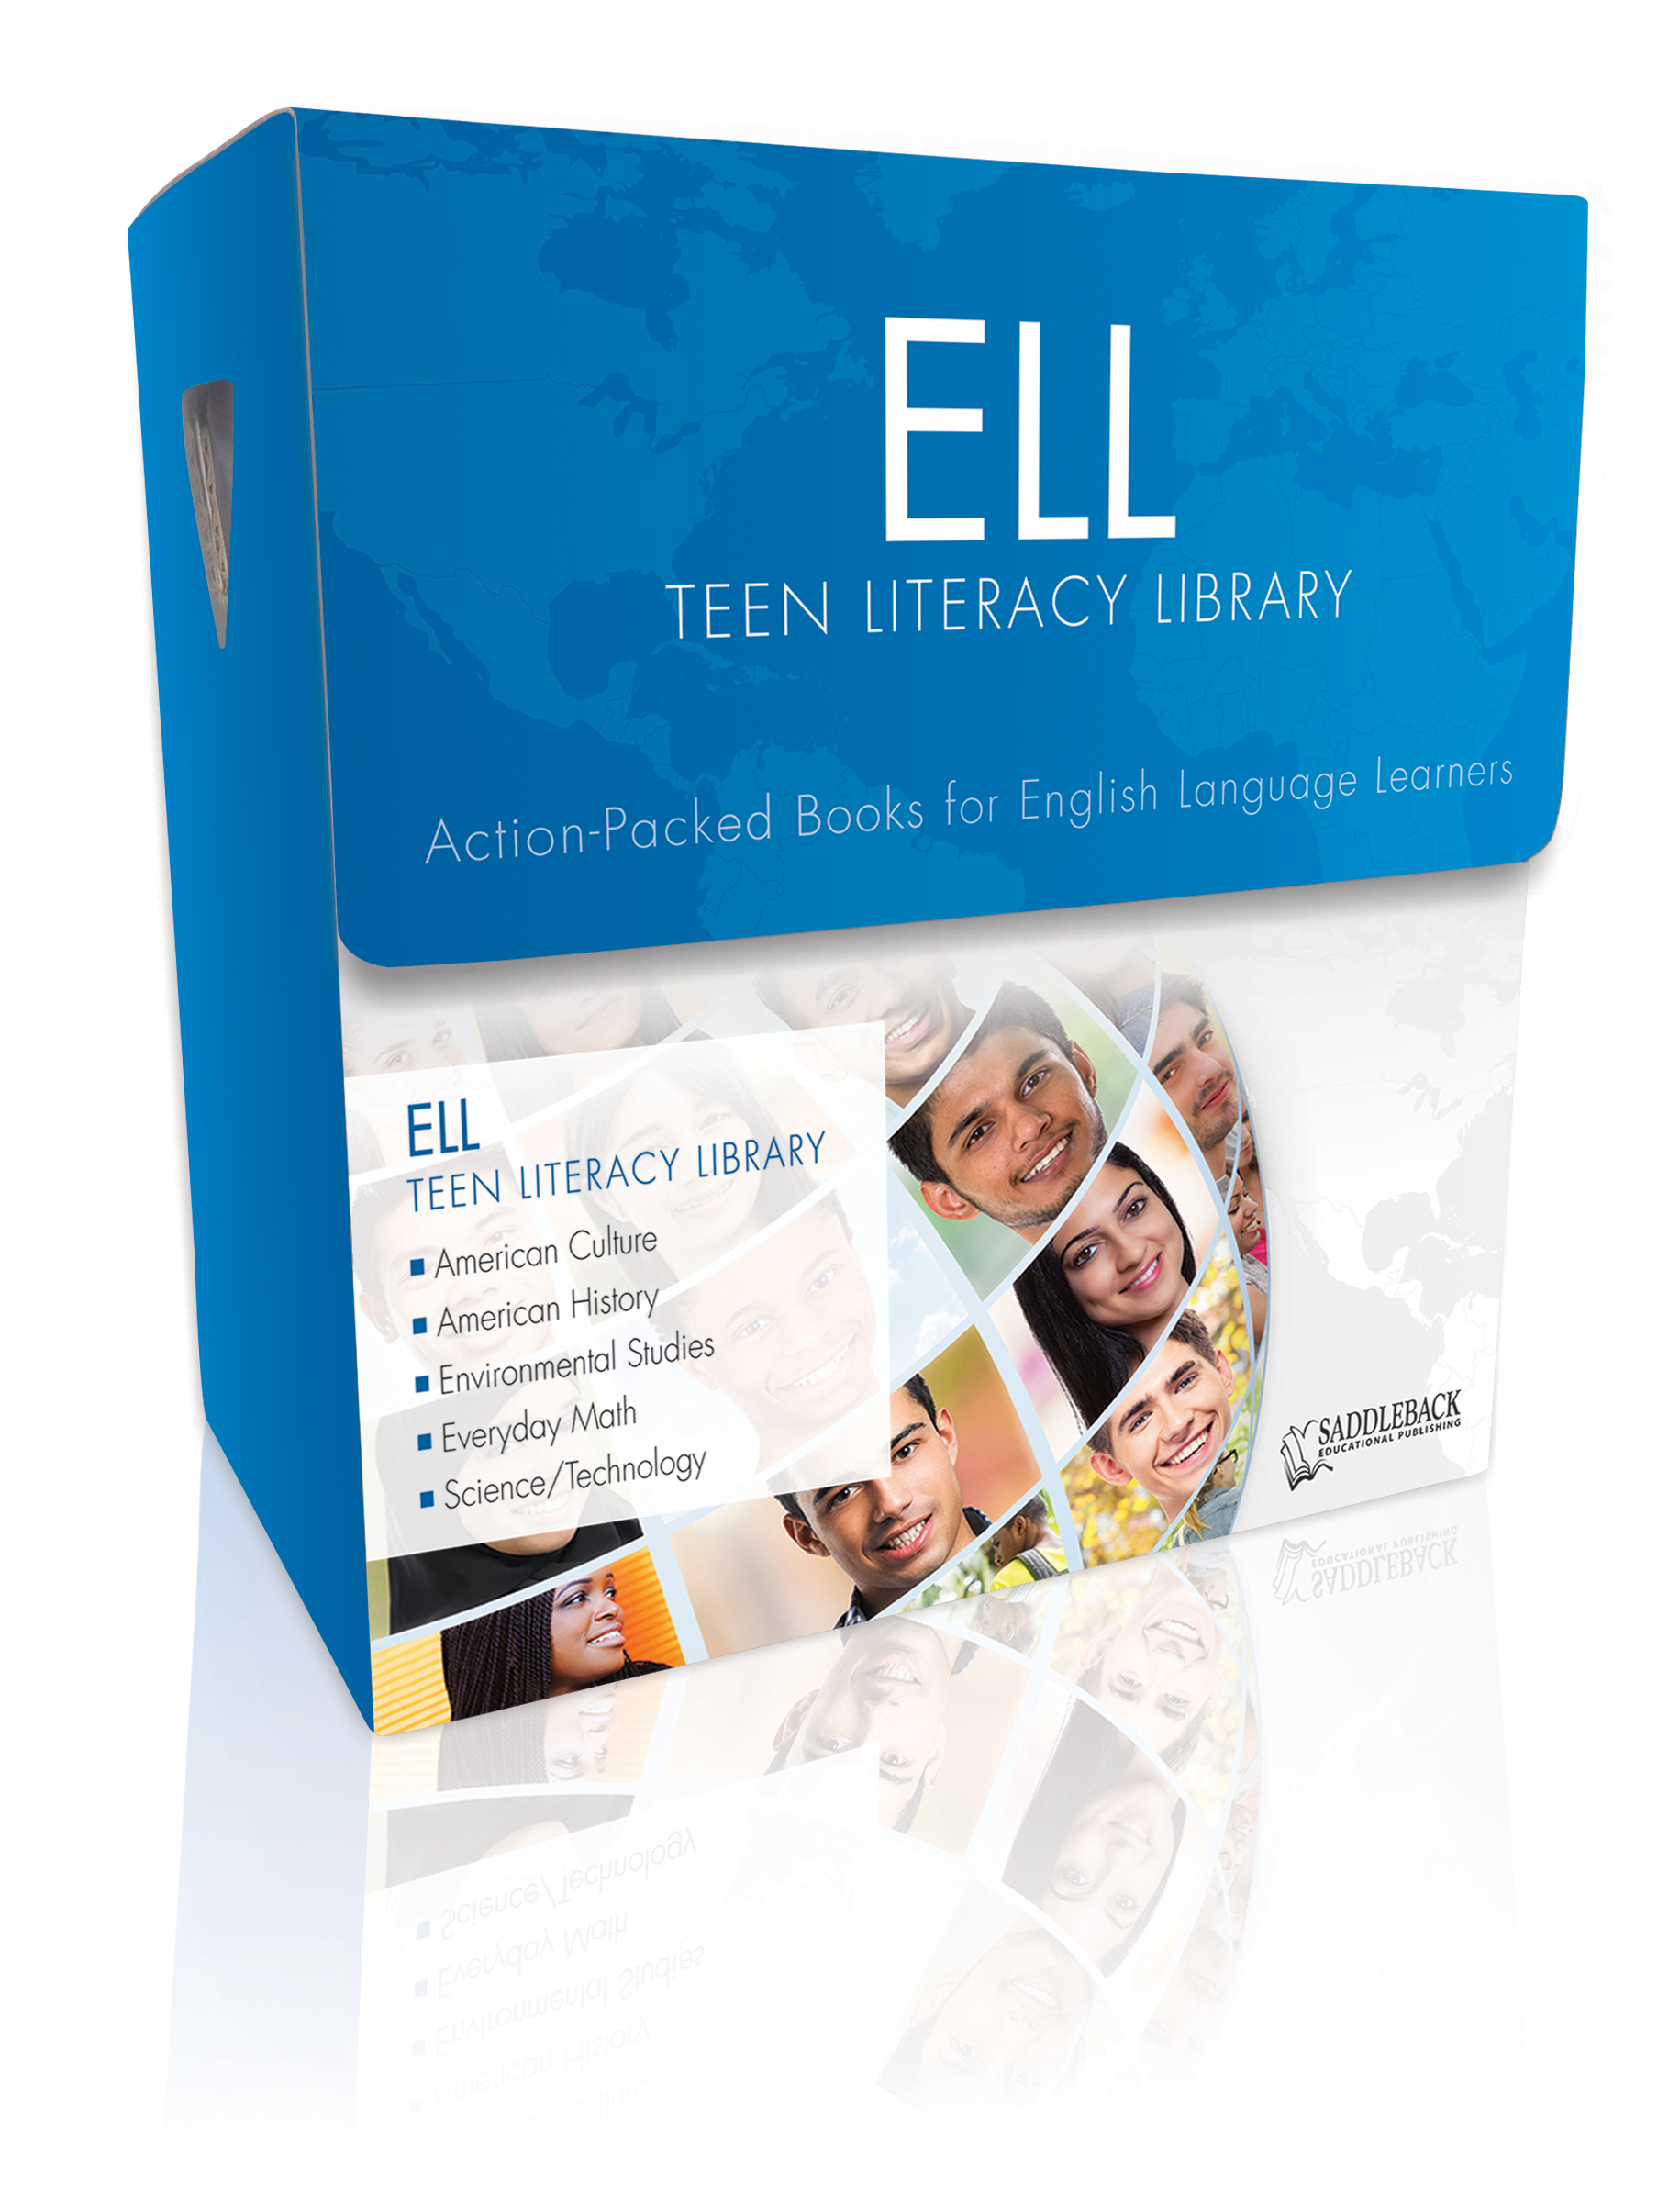 ell-teen-literacy-library.jpg